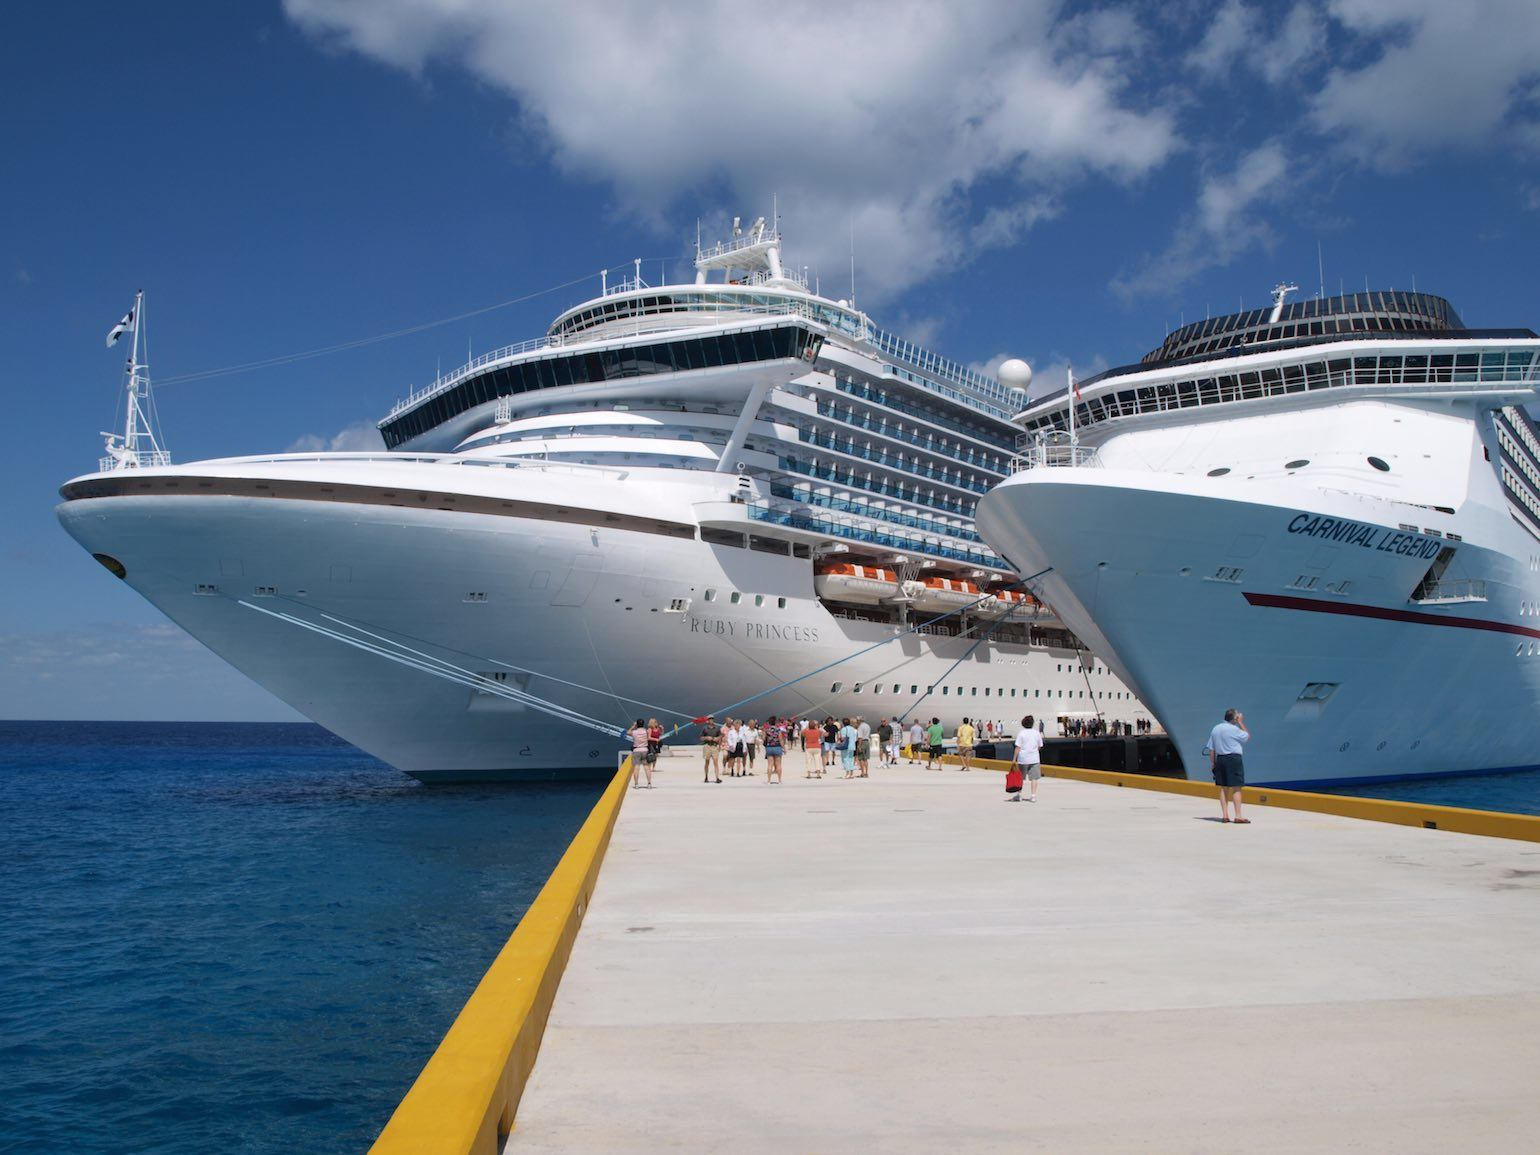 Ruby Princess and Carnival Legend